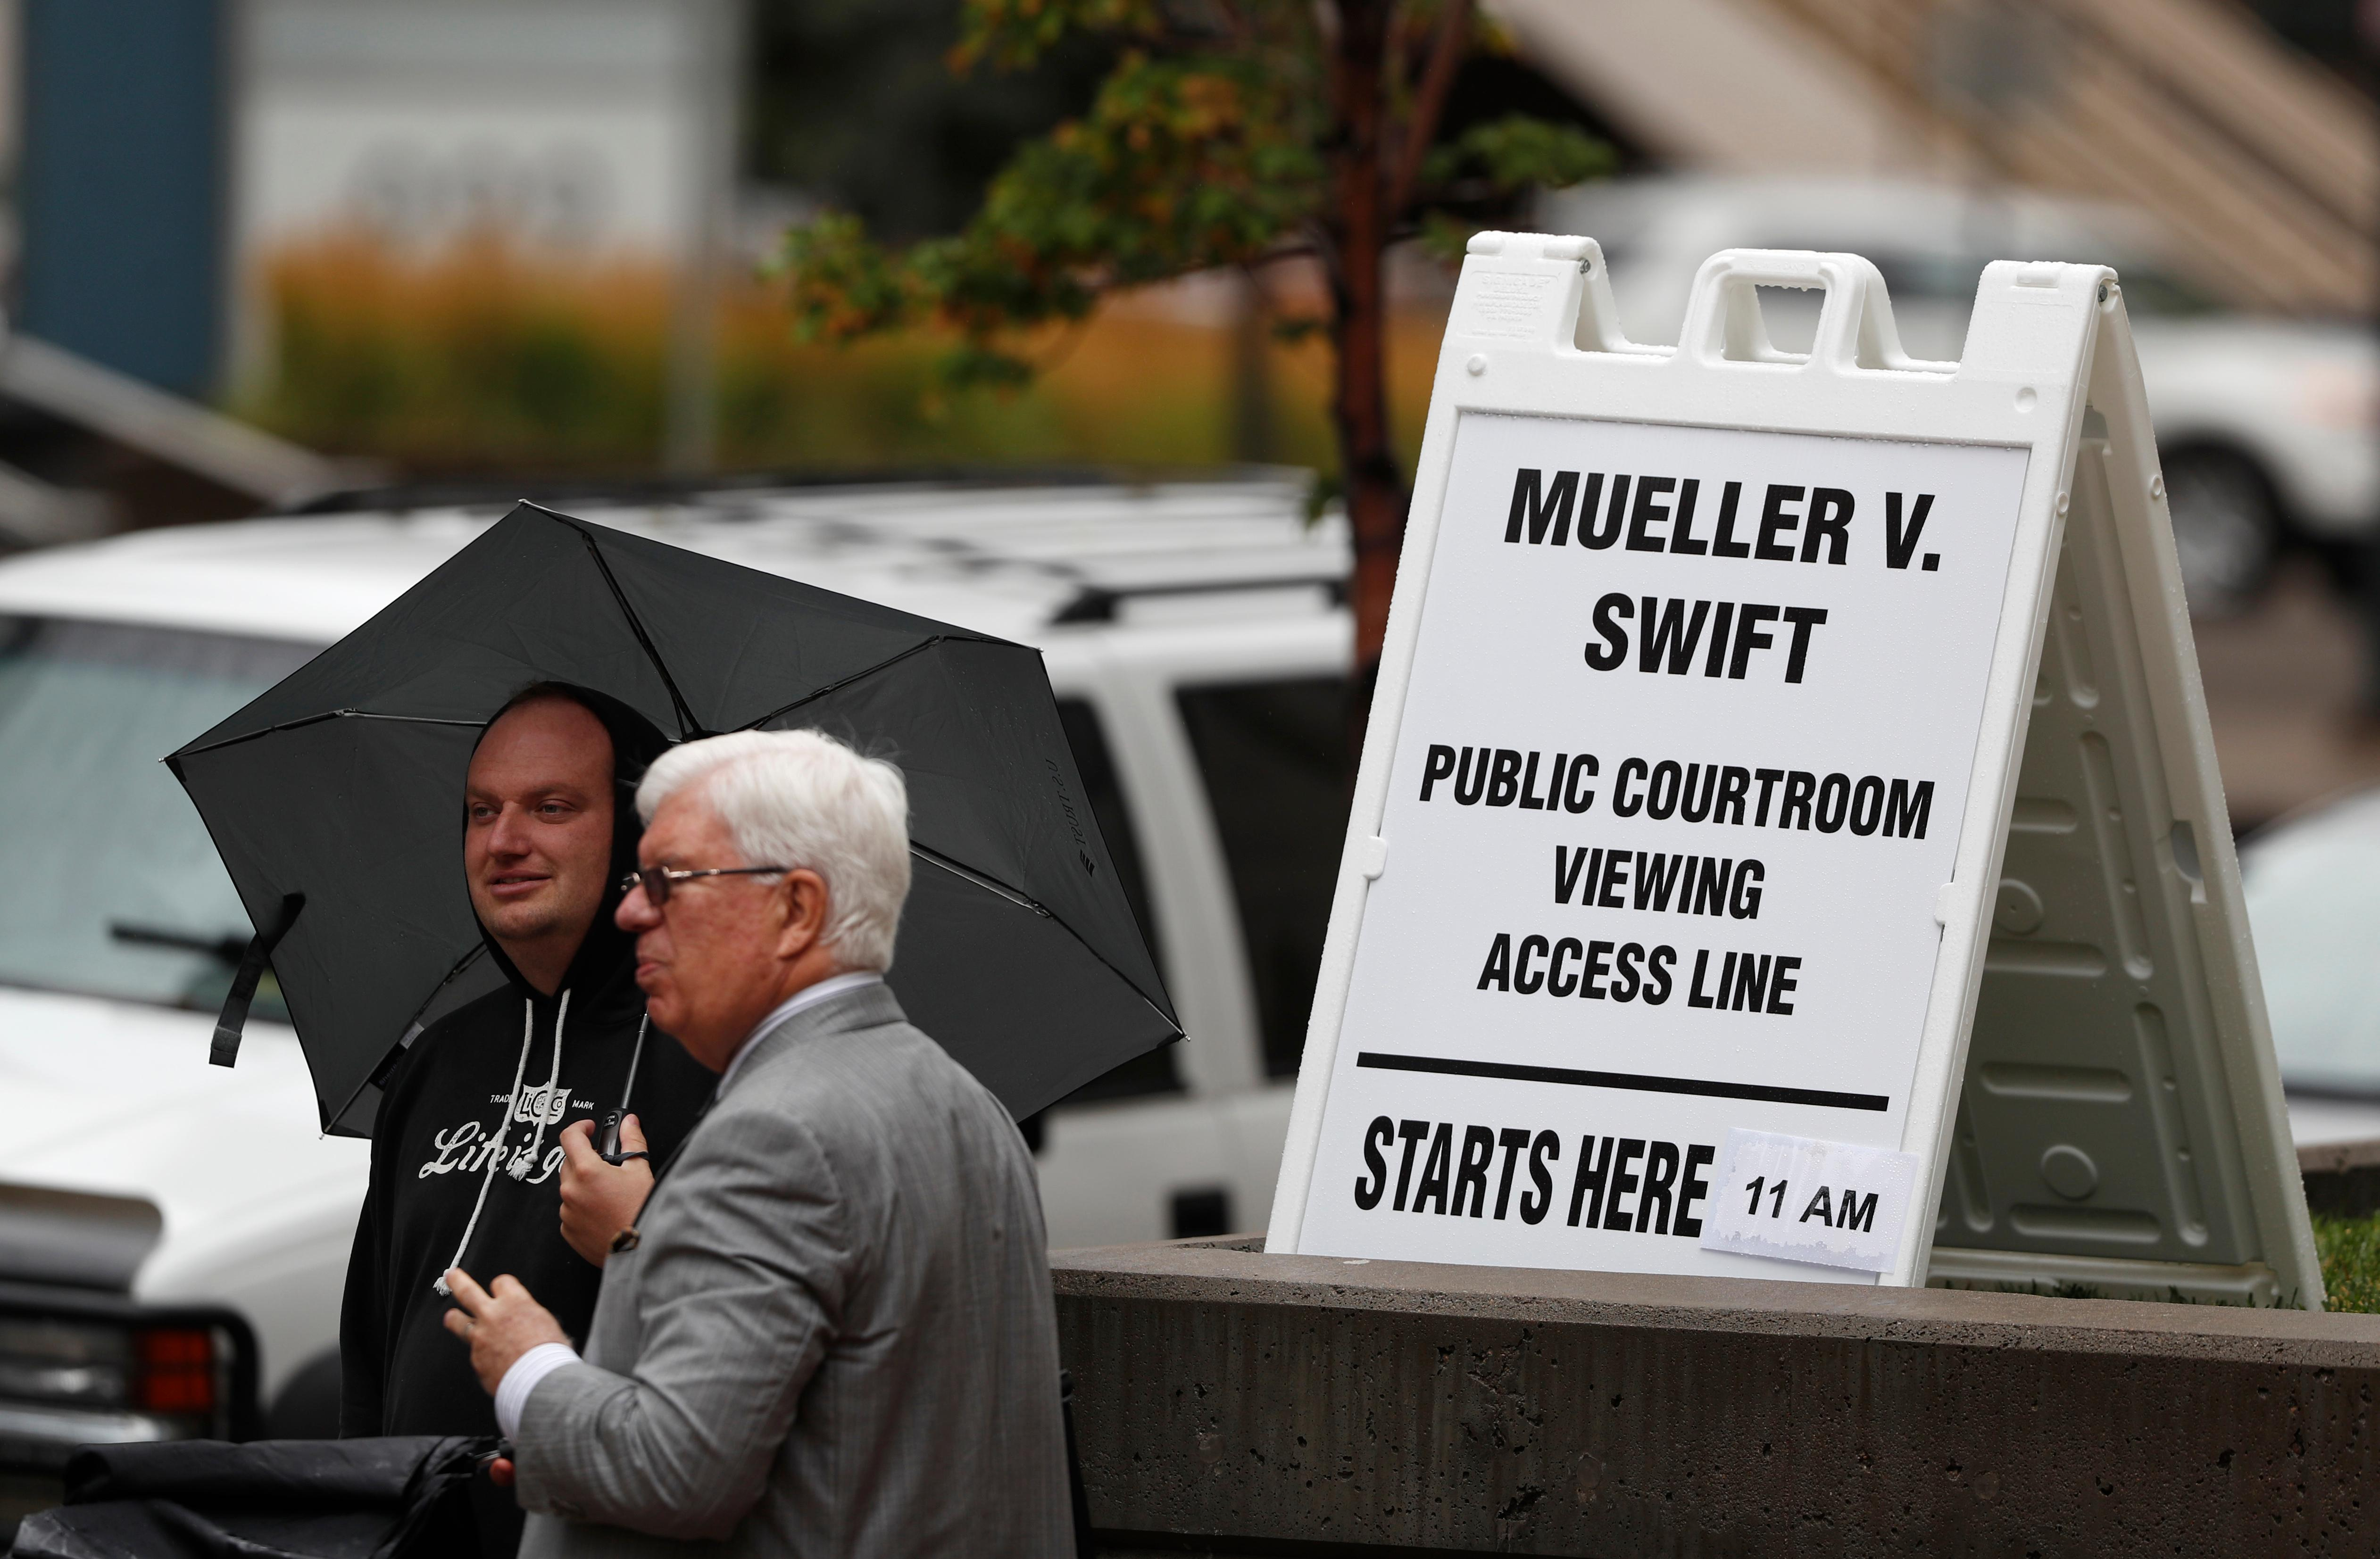 Members of the public Arthur Lewis, left, and Bruce Conant, both of Denver, wait to attend the jury selection phase in a civil trial to determine whether a radio host groped pop singer Taylor Swift as the case opens in federal court Monday, Aug. 7, 2017, in Denver. (AP Photo/David Zalubowski)